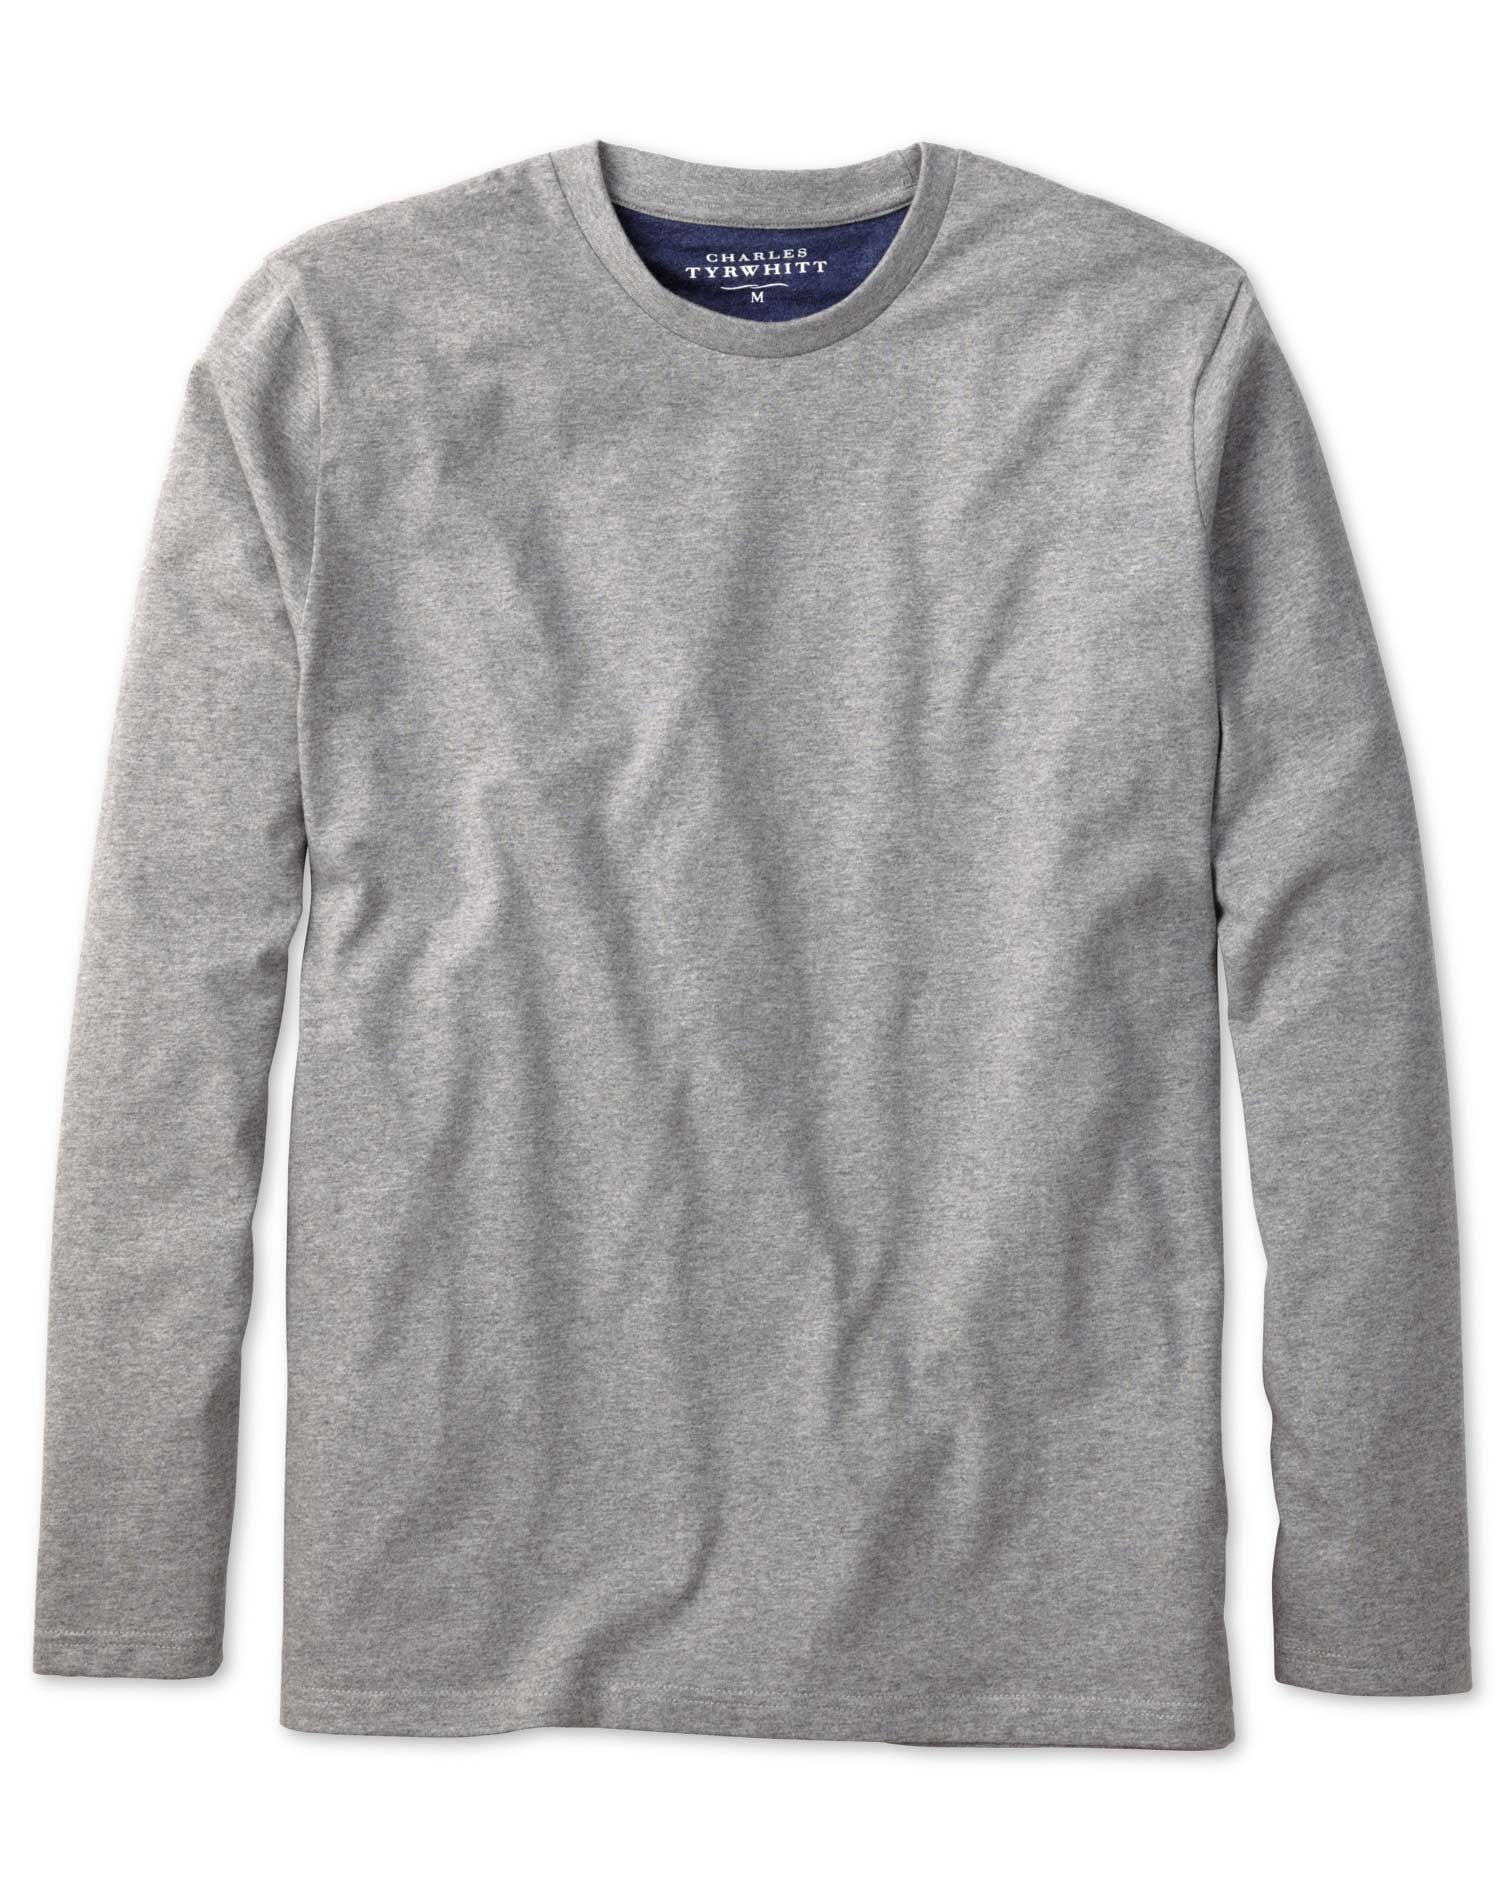 Grey cotton long sleeve t-shirt | Charles Tyrwhitt